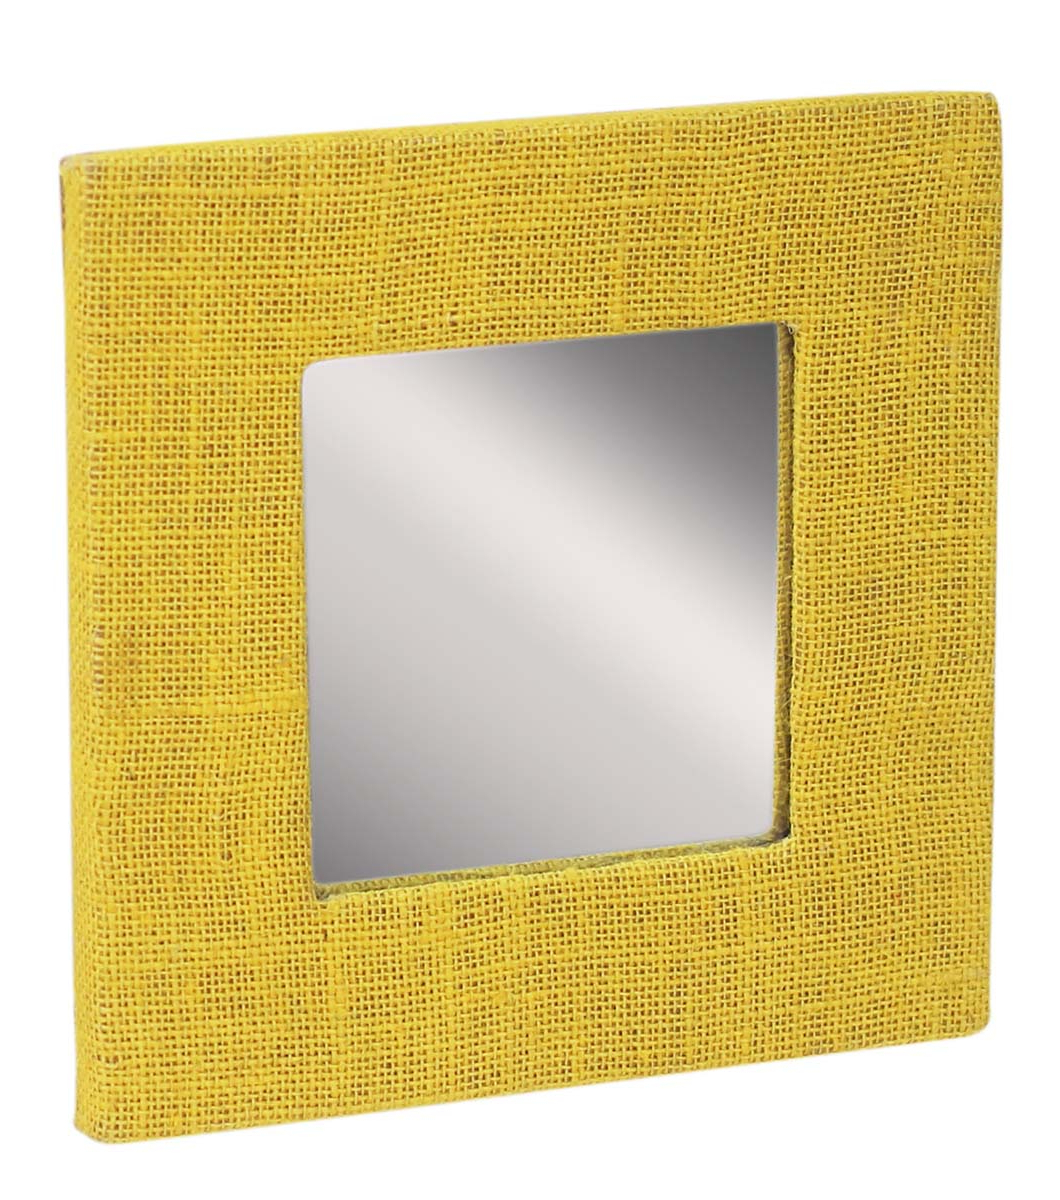 Well Known Yellow Wall Mirrors For Wholesale Square Shaped Wall Mirror In Bulk – Handmade Decorative (View 15 of 20)